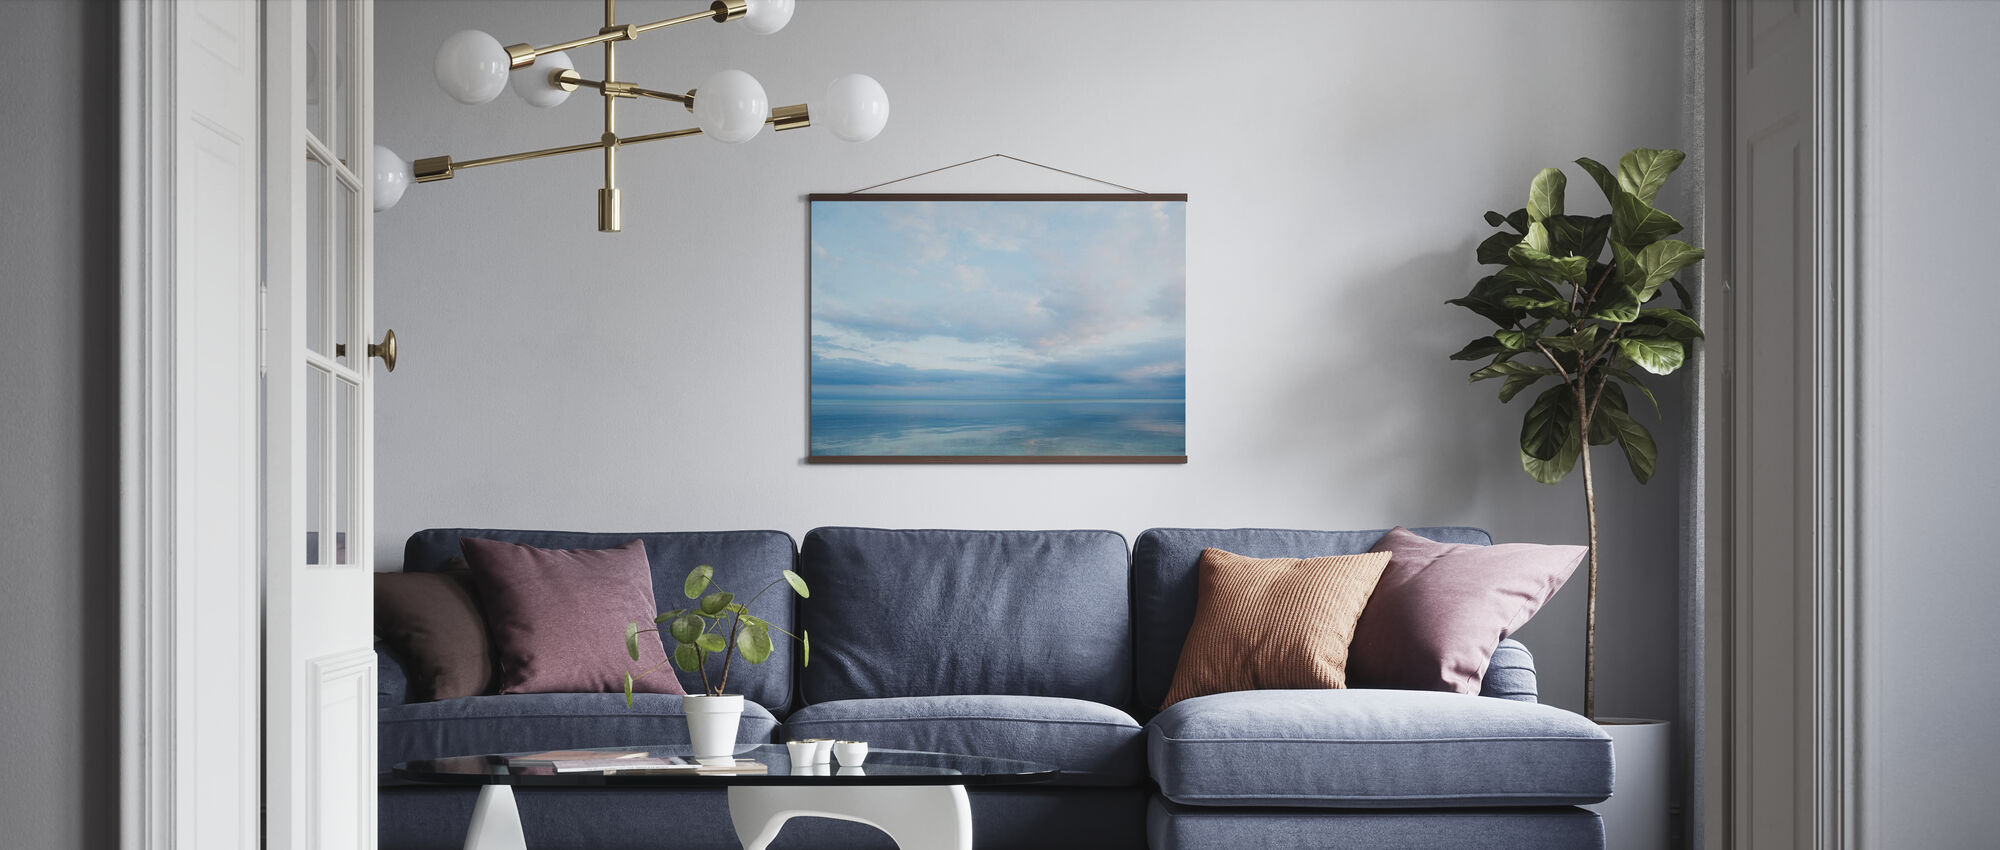 Islamorada in Florida Keys, USA - Poster - Living Room